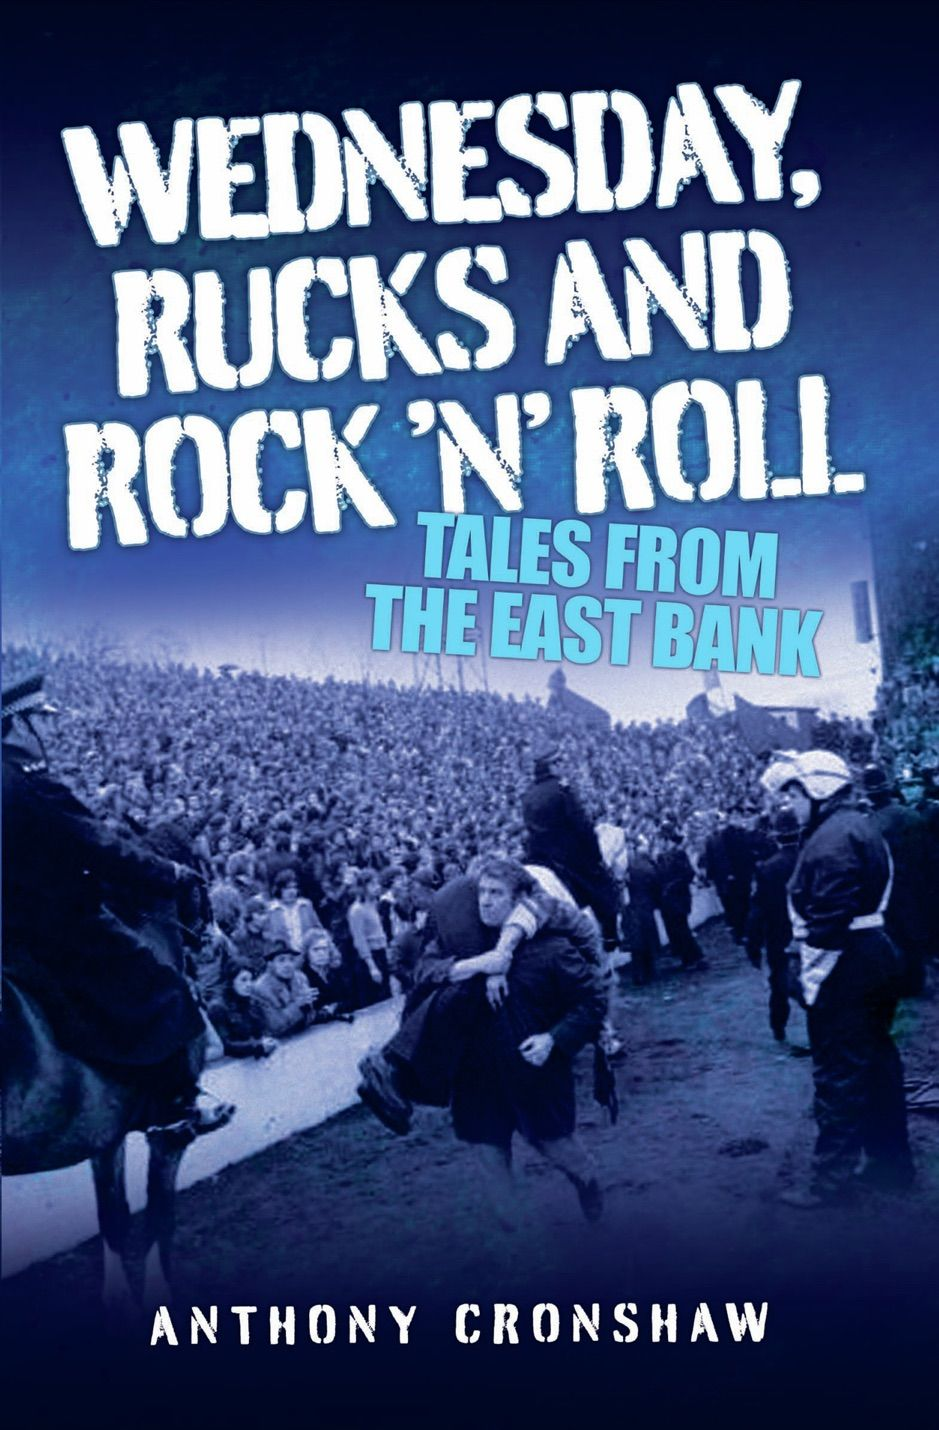 Wednesday Rucks and Rock 'n' Roll , spon, Rock,